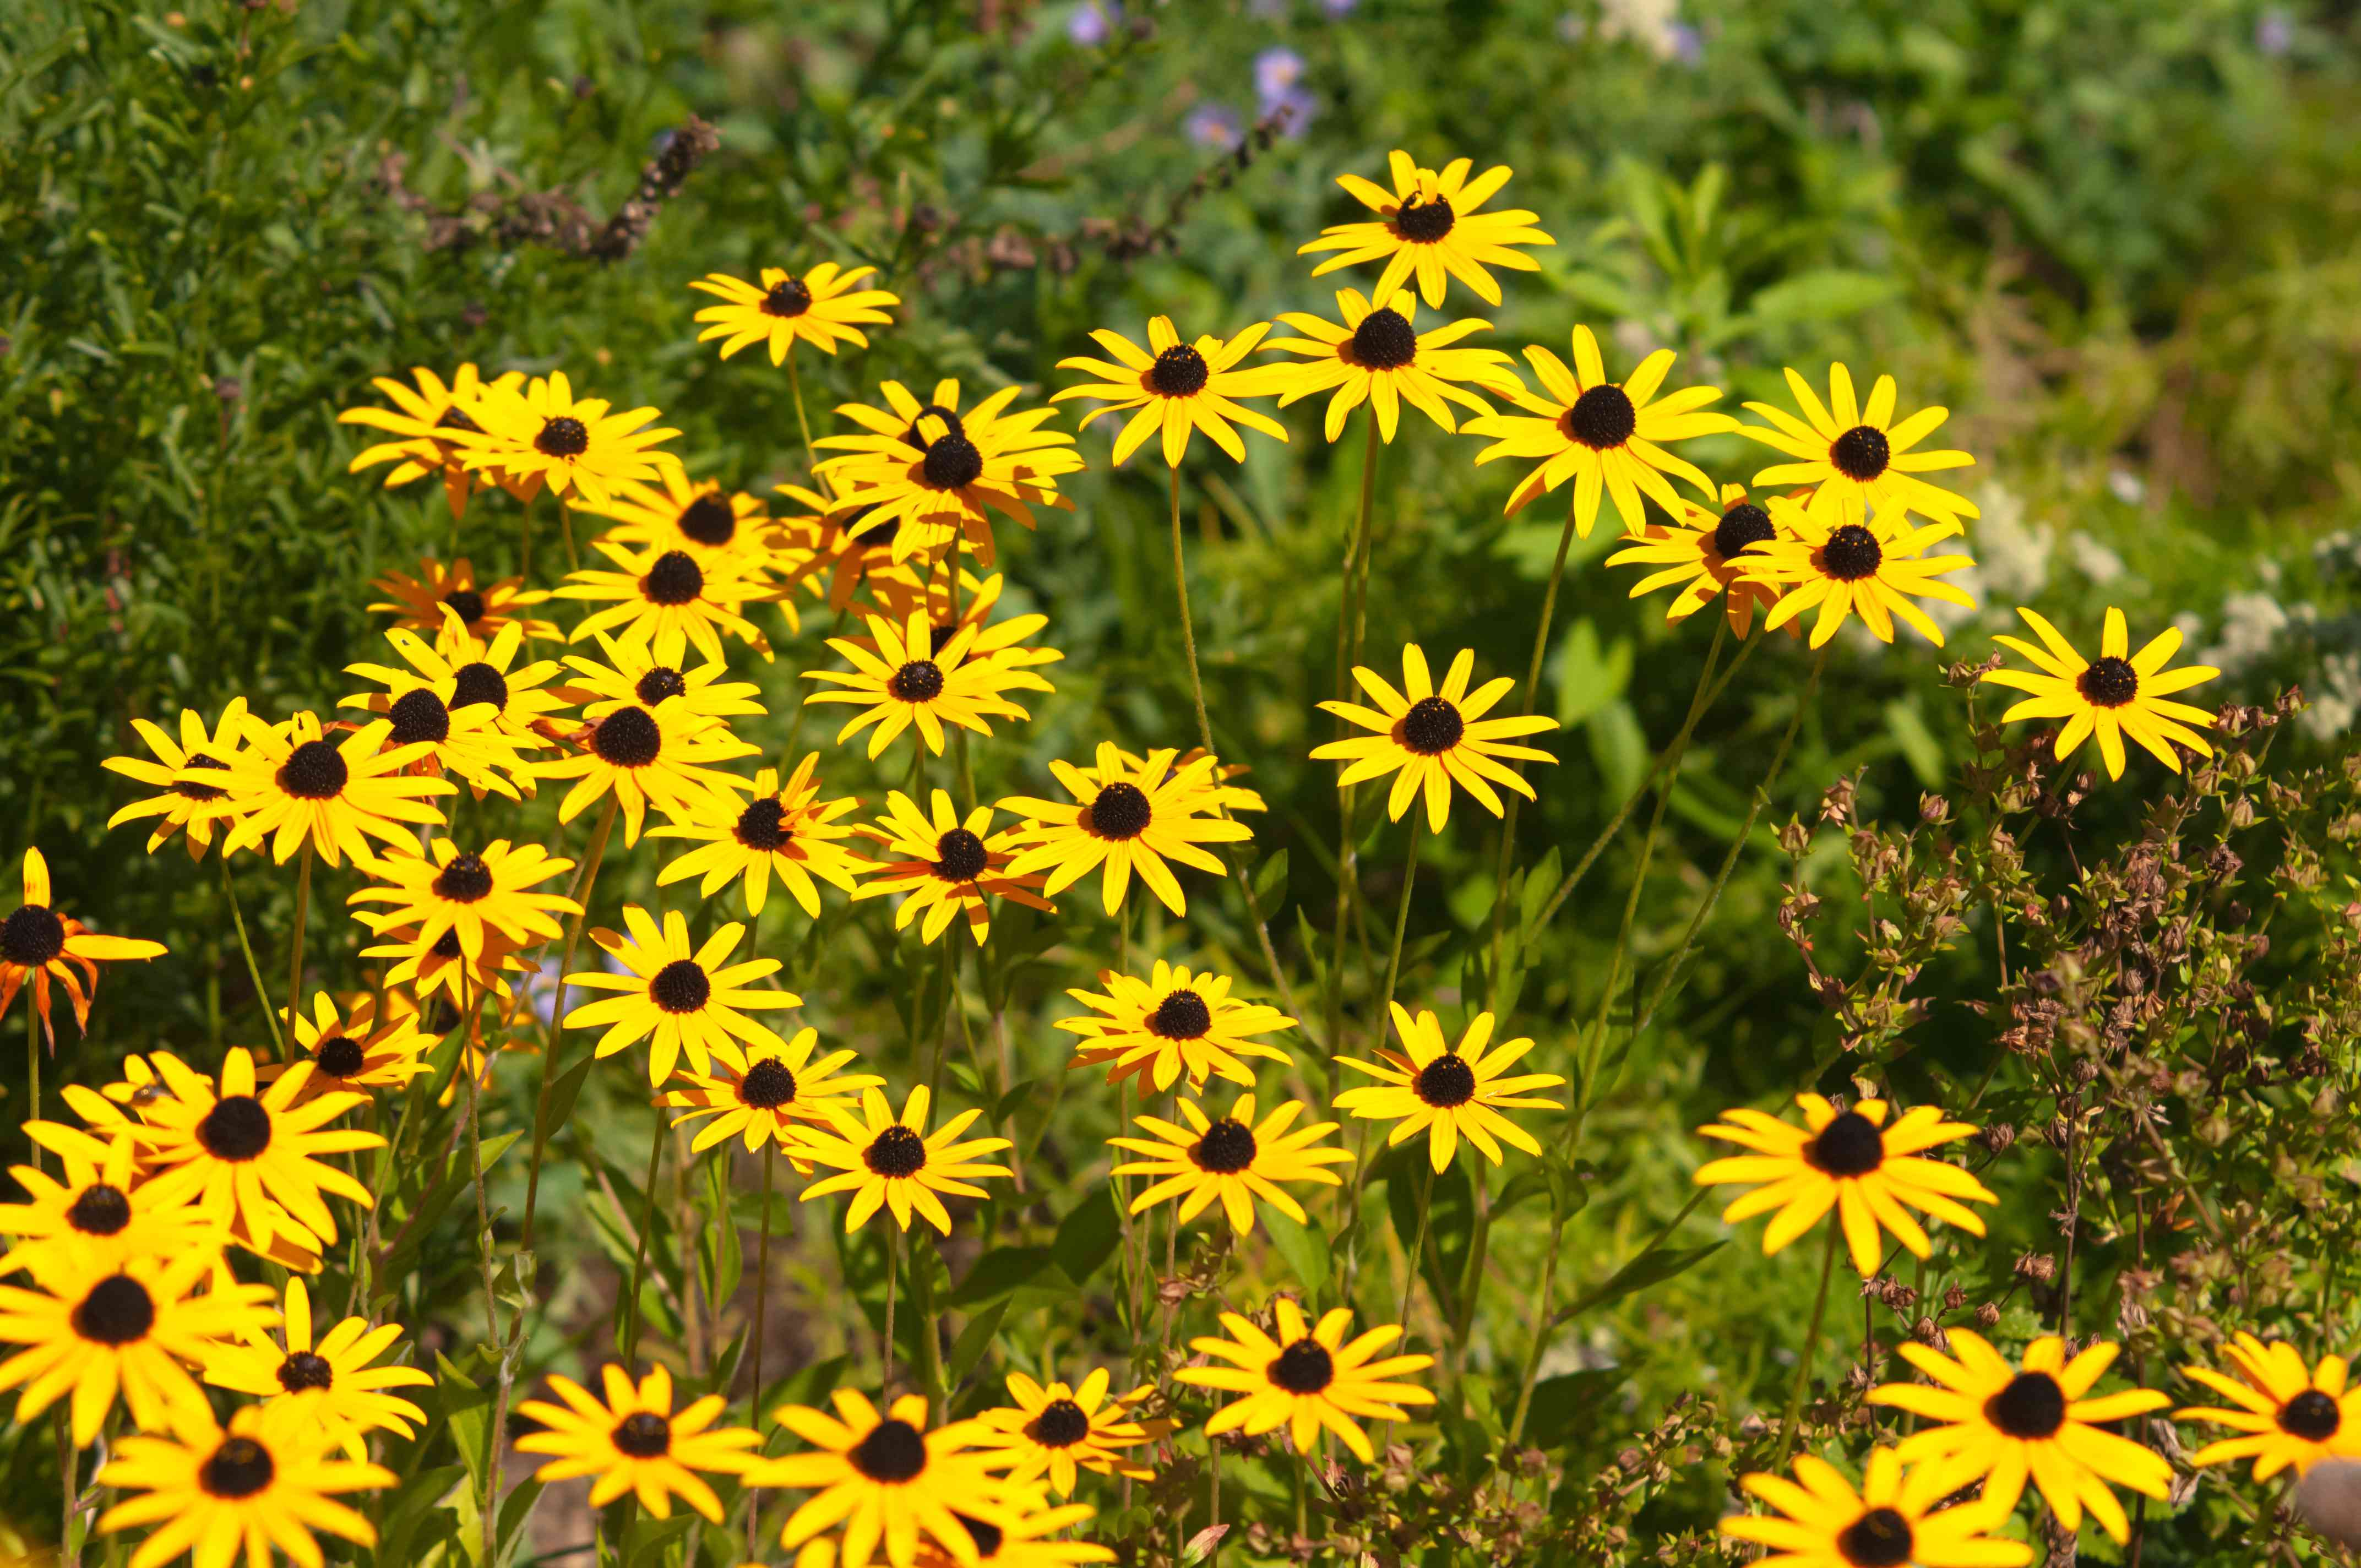 Rudbeckia black-eyed susan flowers with radiating yellow petals in sunlight